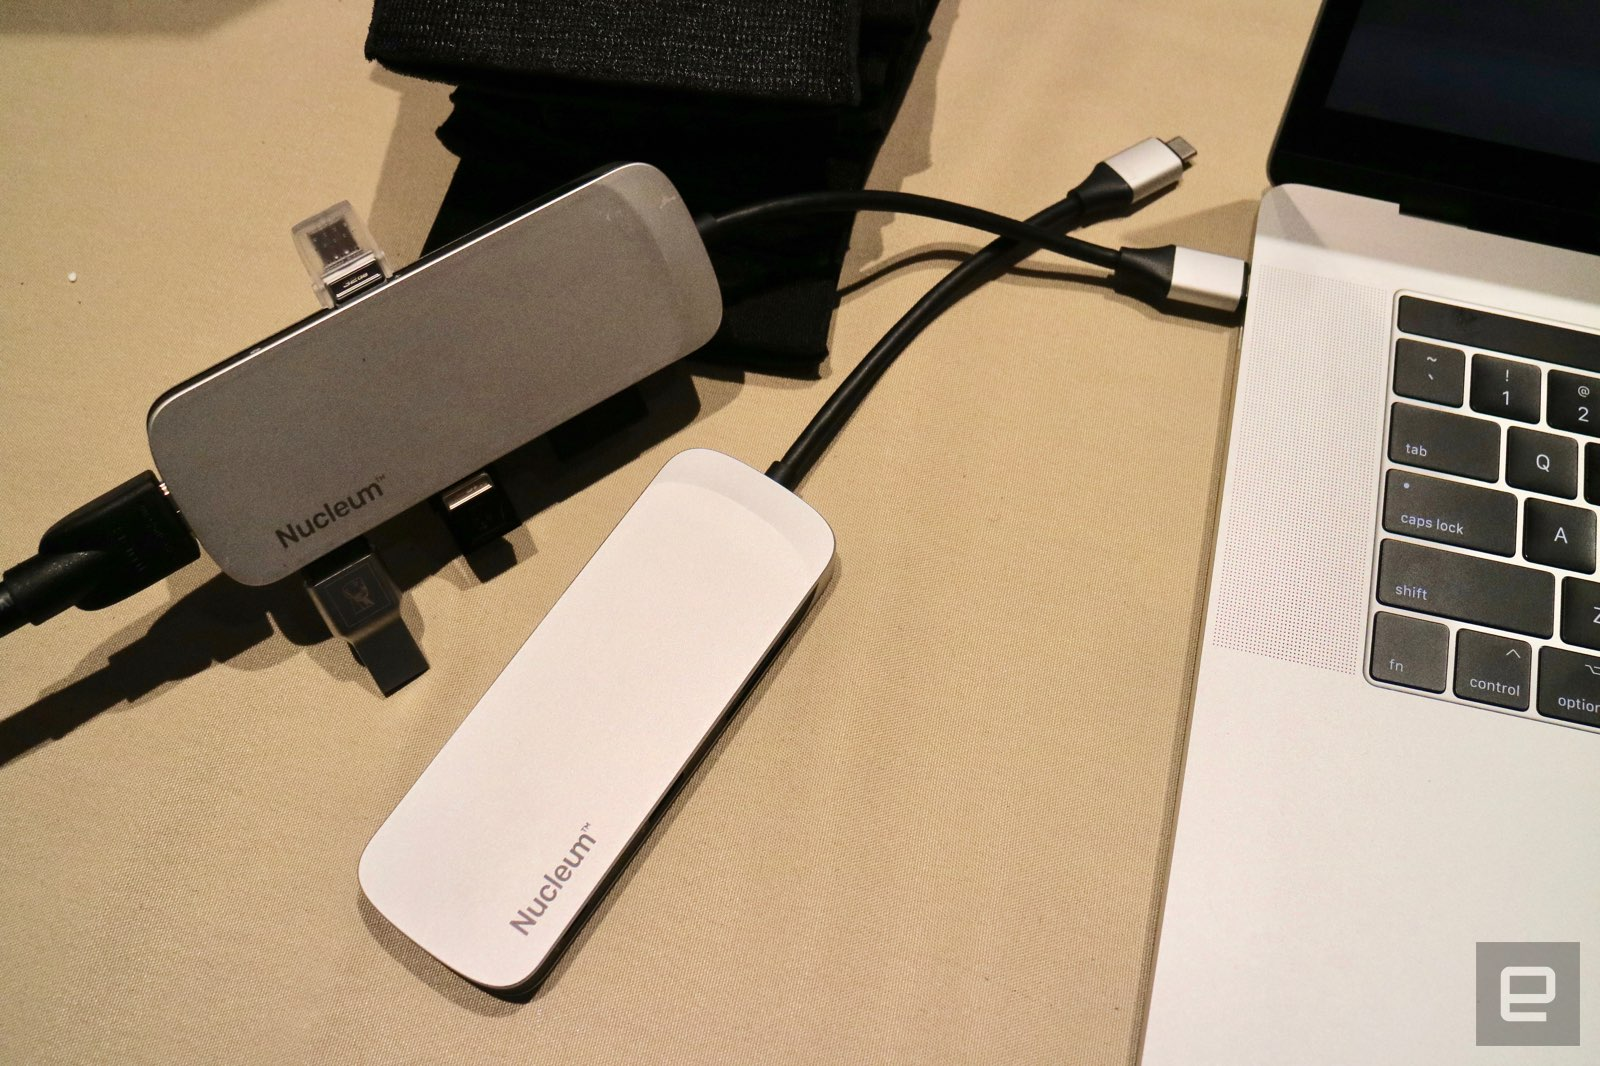 Kingston's 7-in-1 USB-C hub saves your MacBook from the dongle life